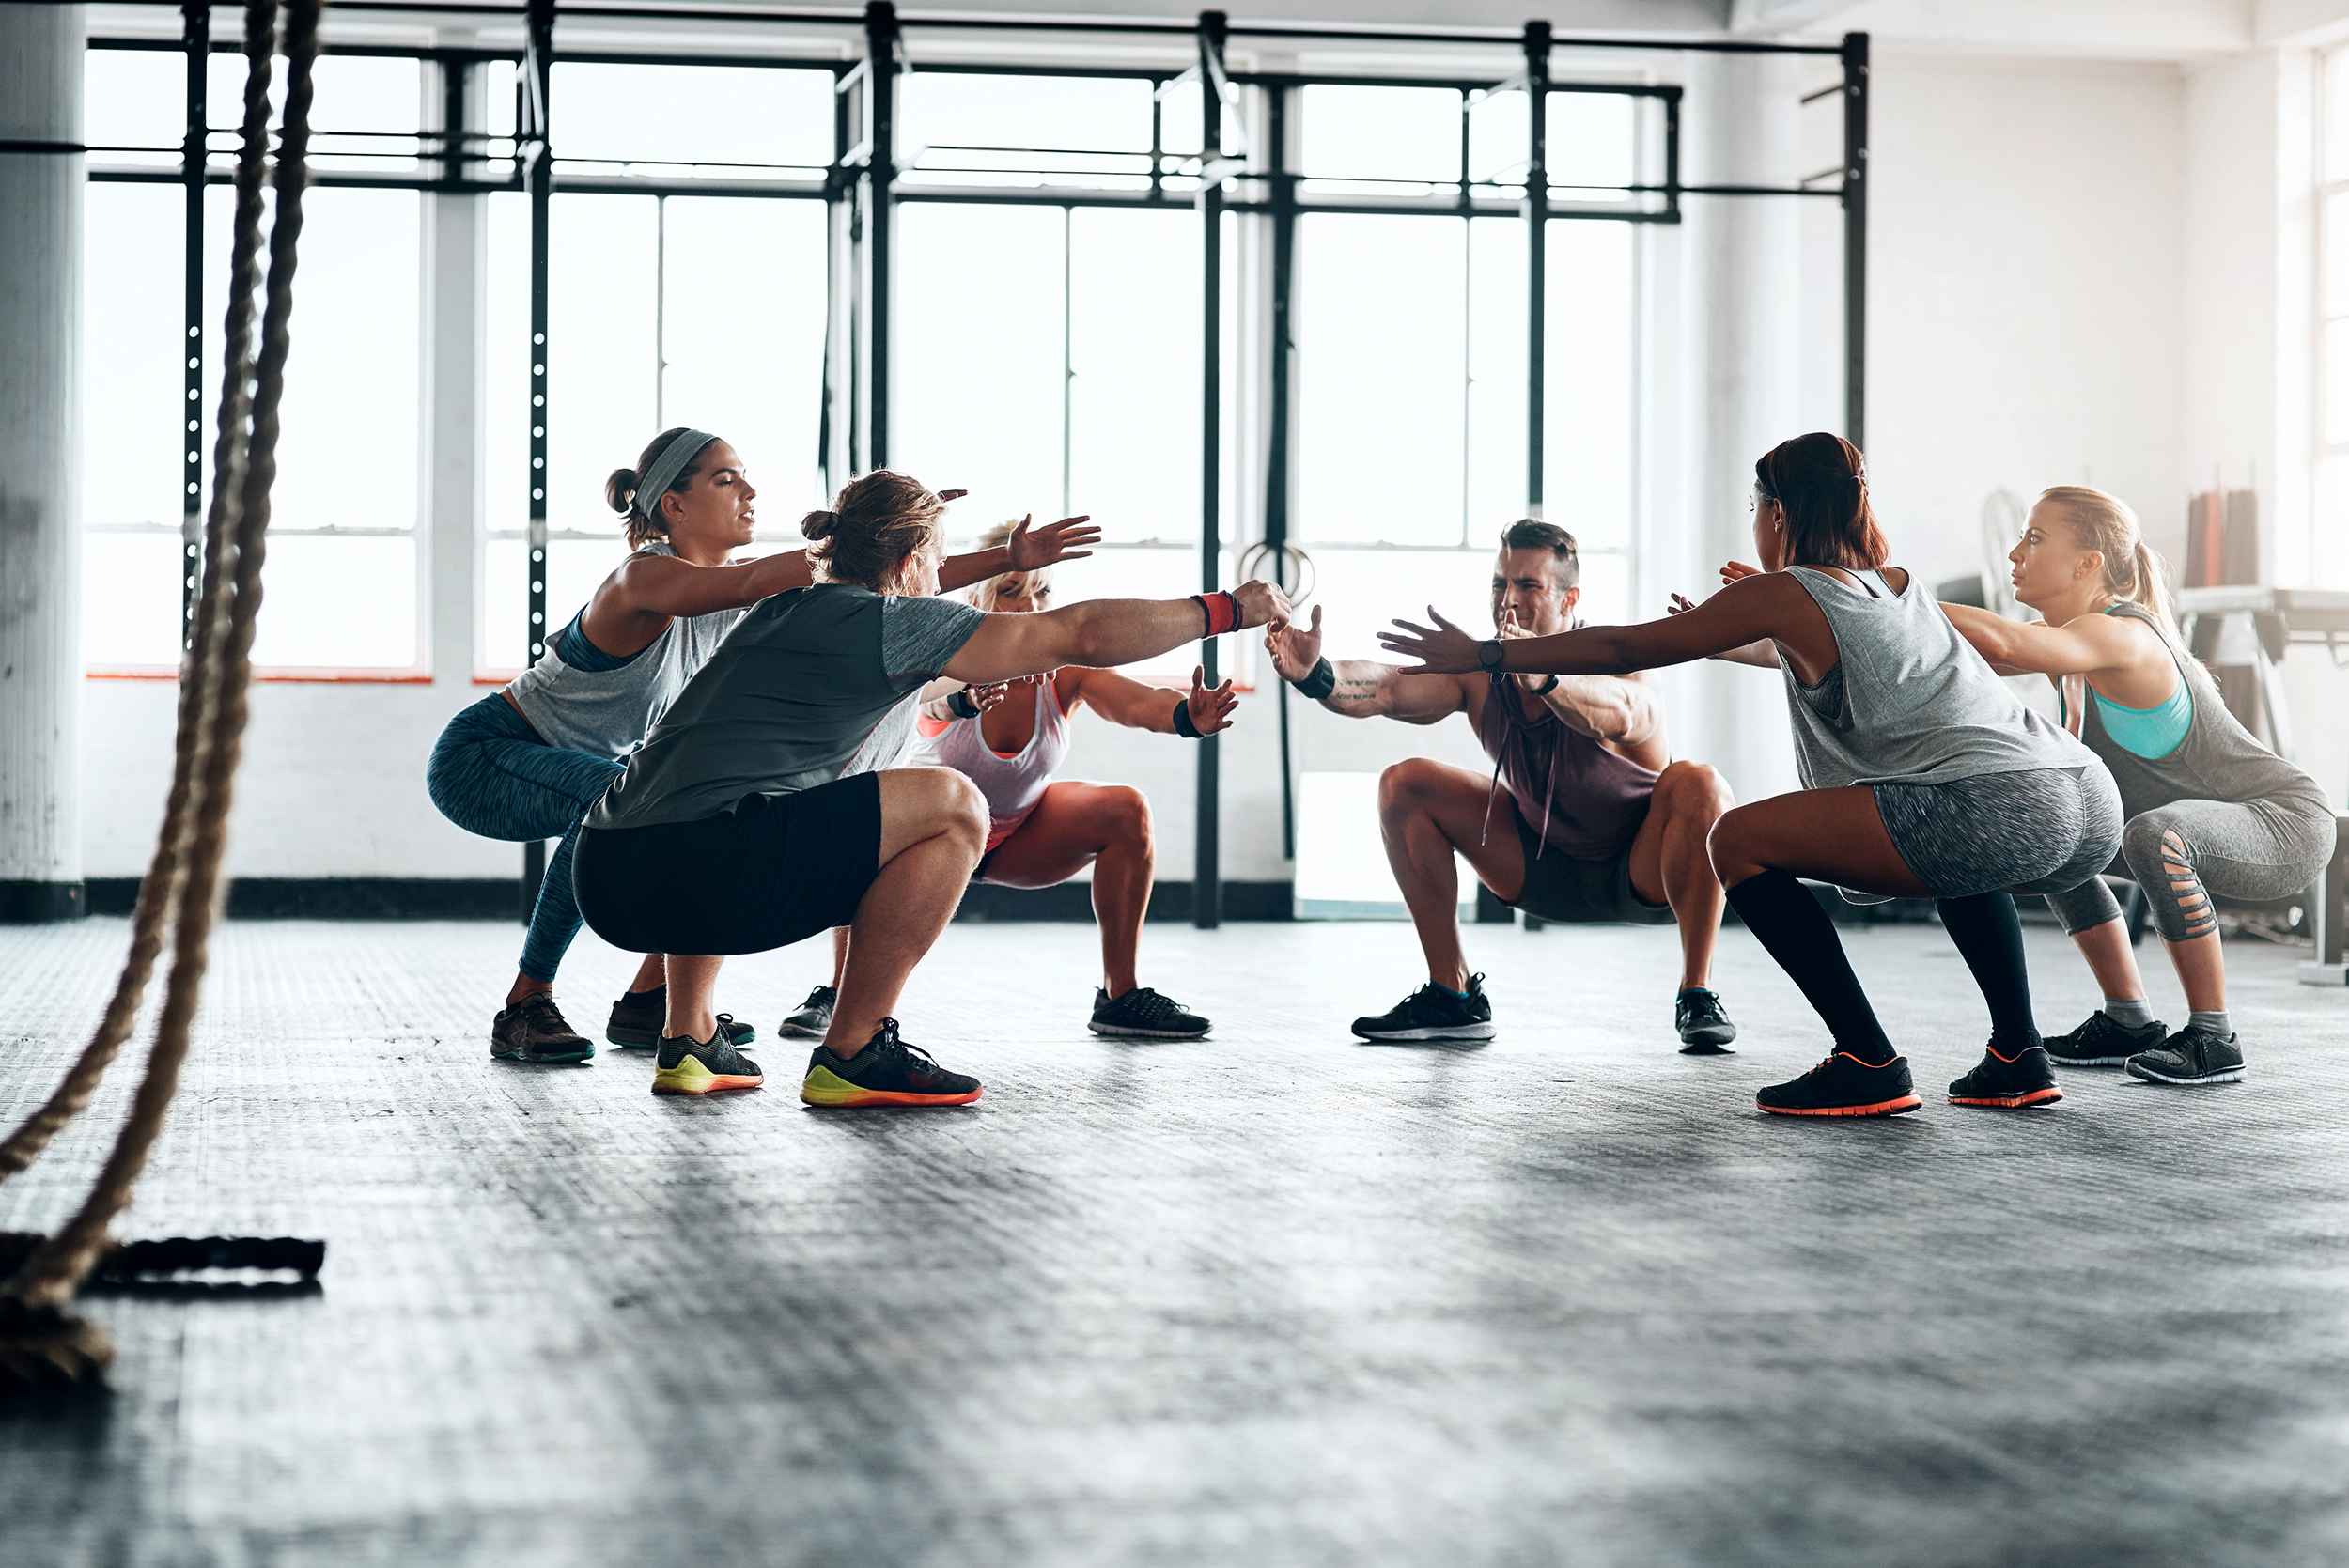 Health: Benefits of Boxing Training for Fitness